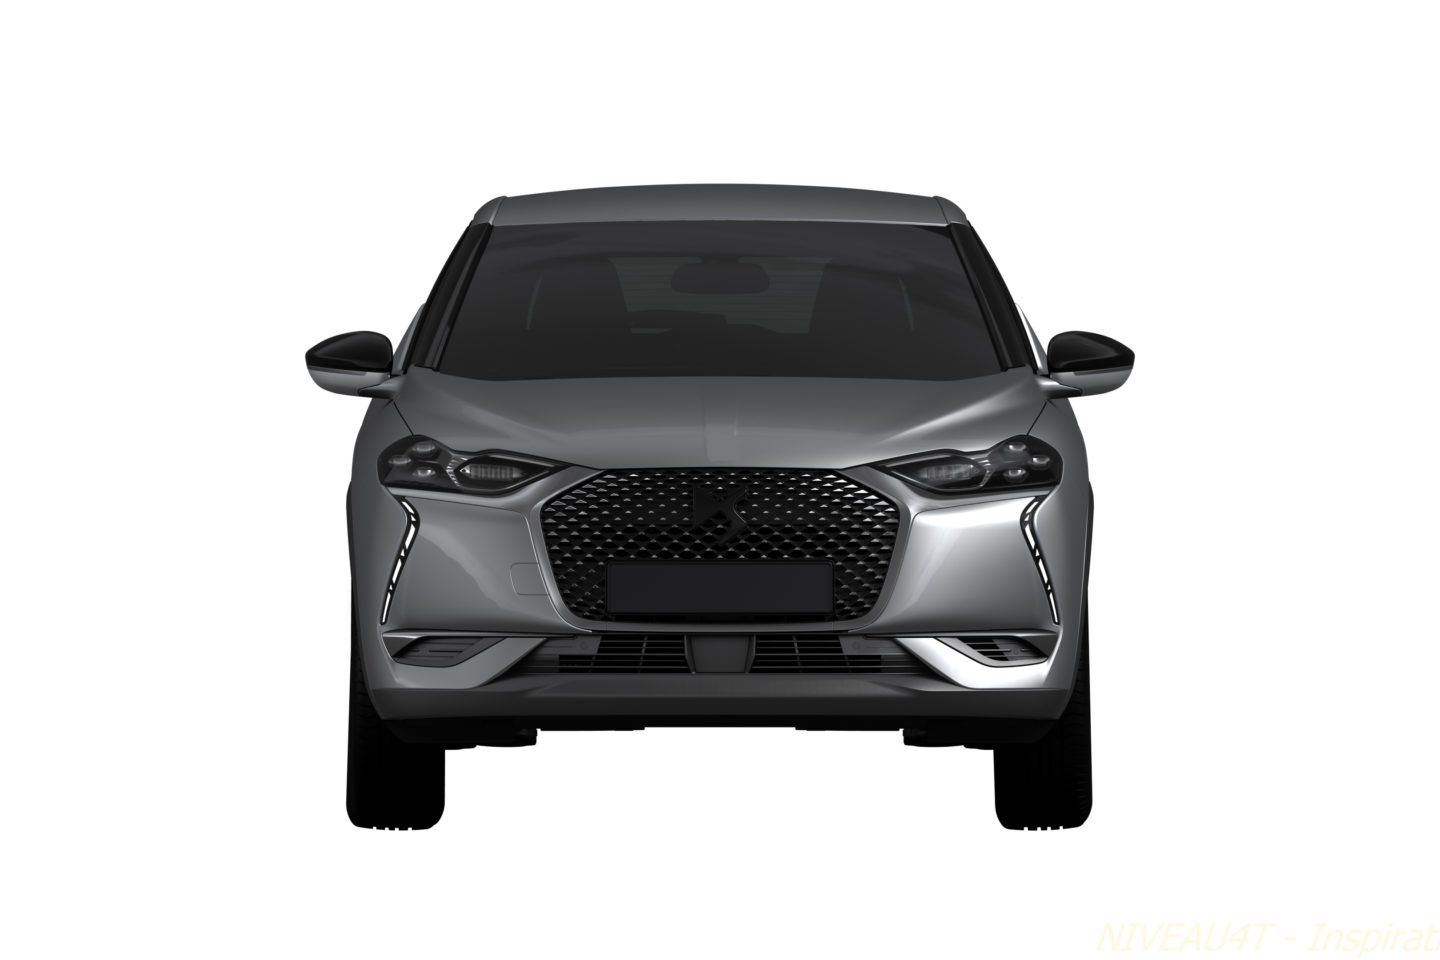 DS 3 Crossback Patente